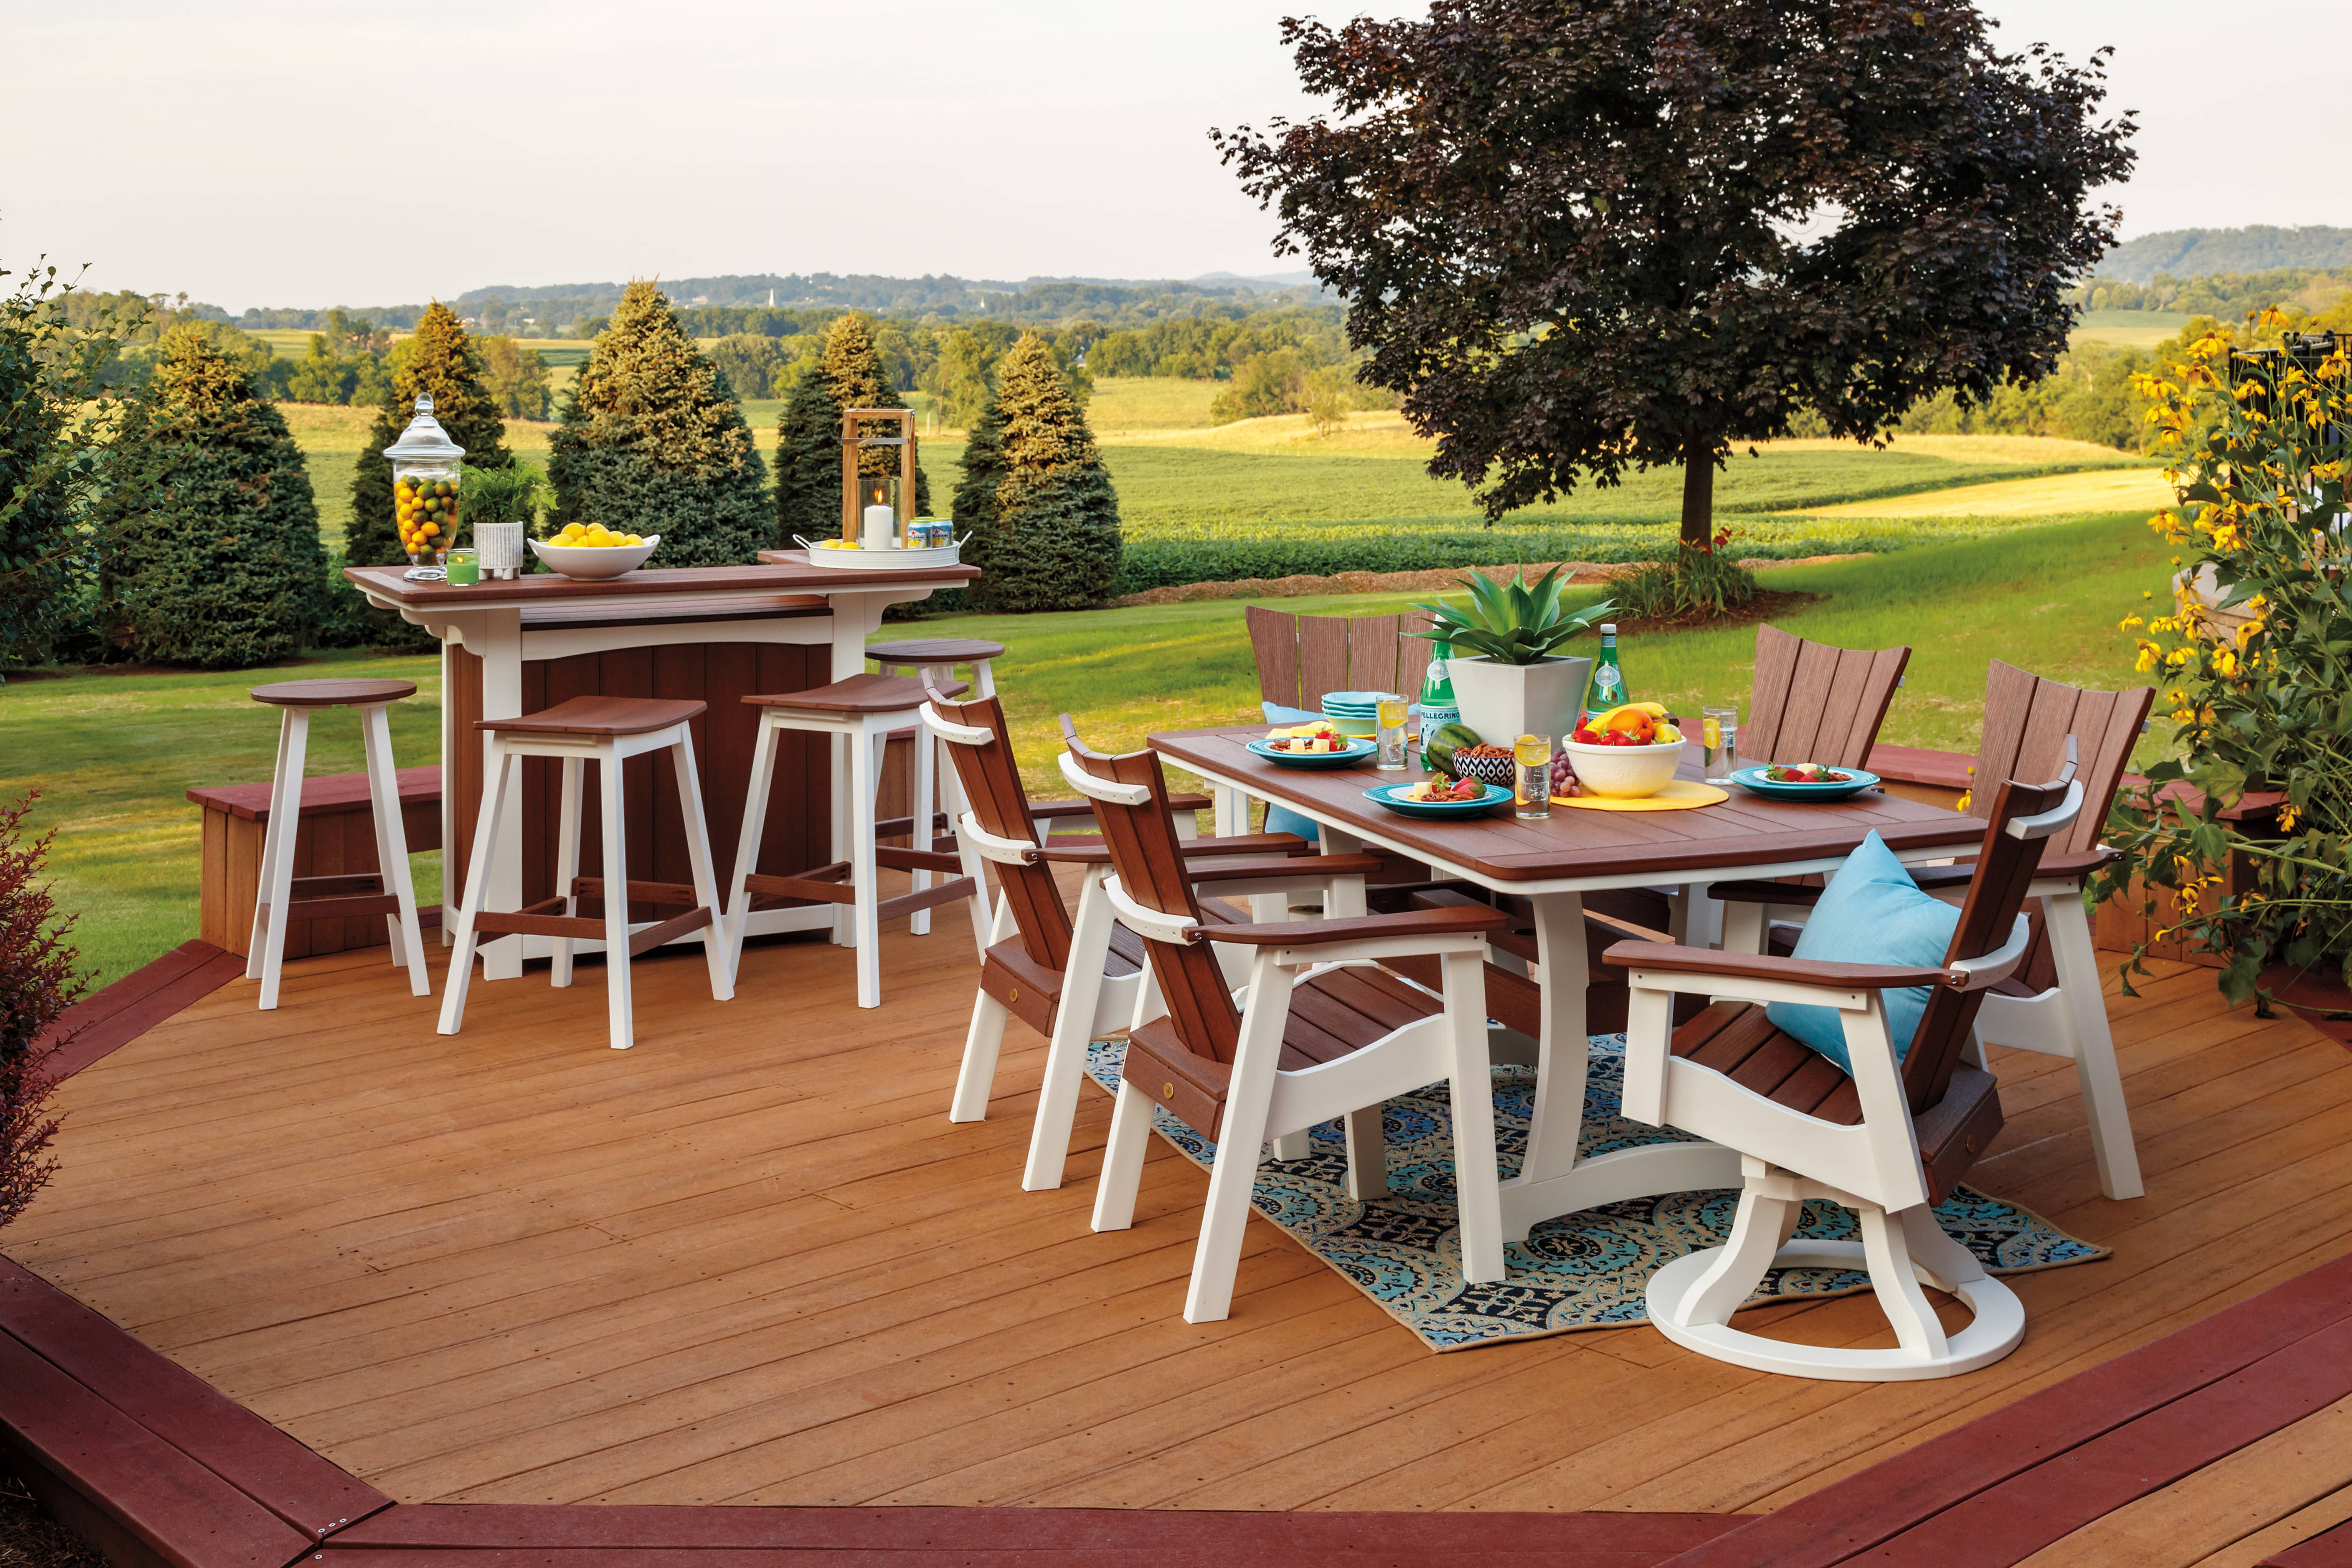 Brown and white poly furniture set on a backyard deck